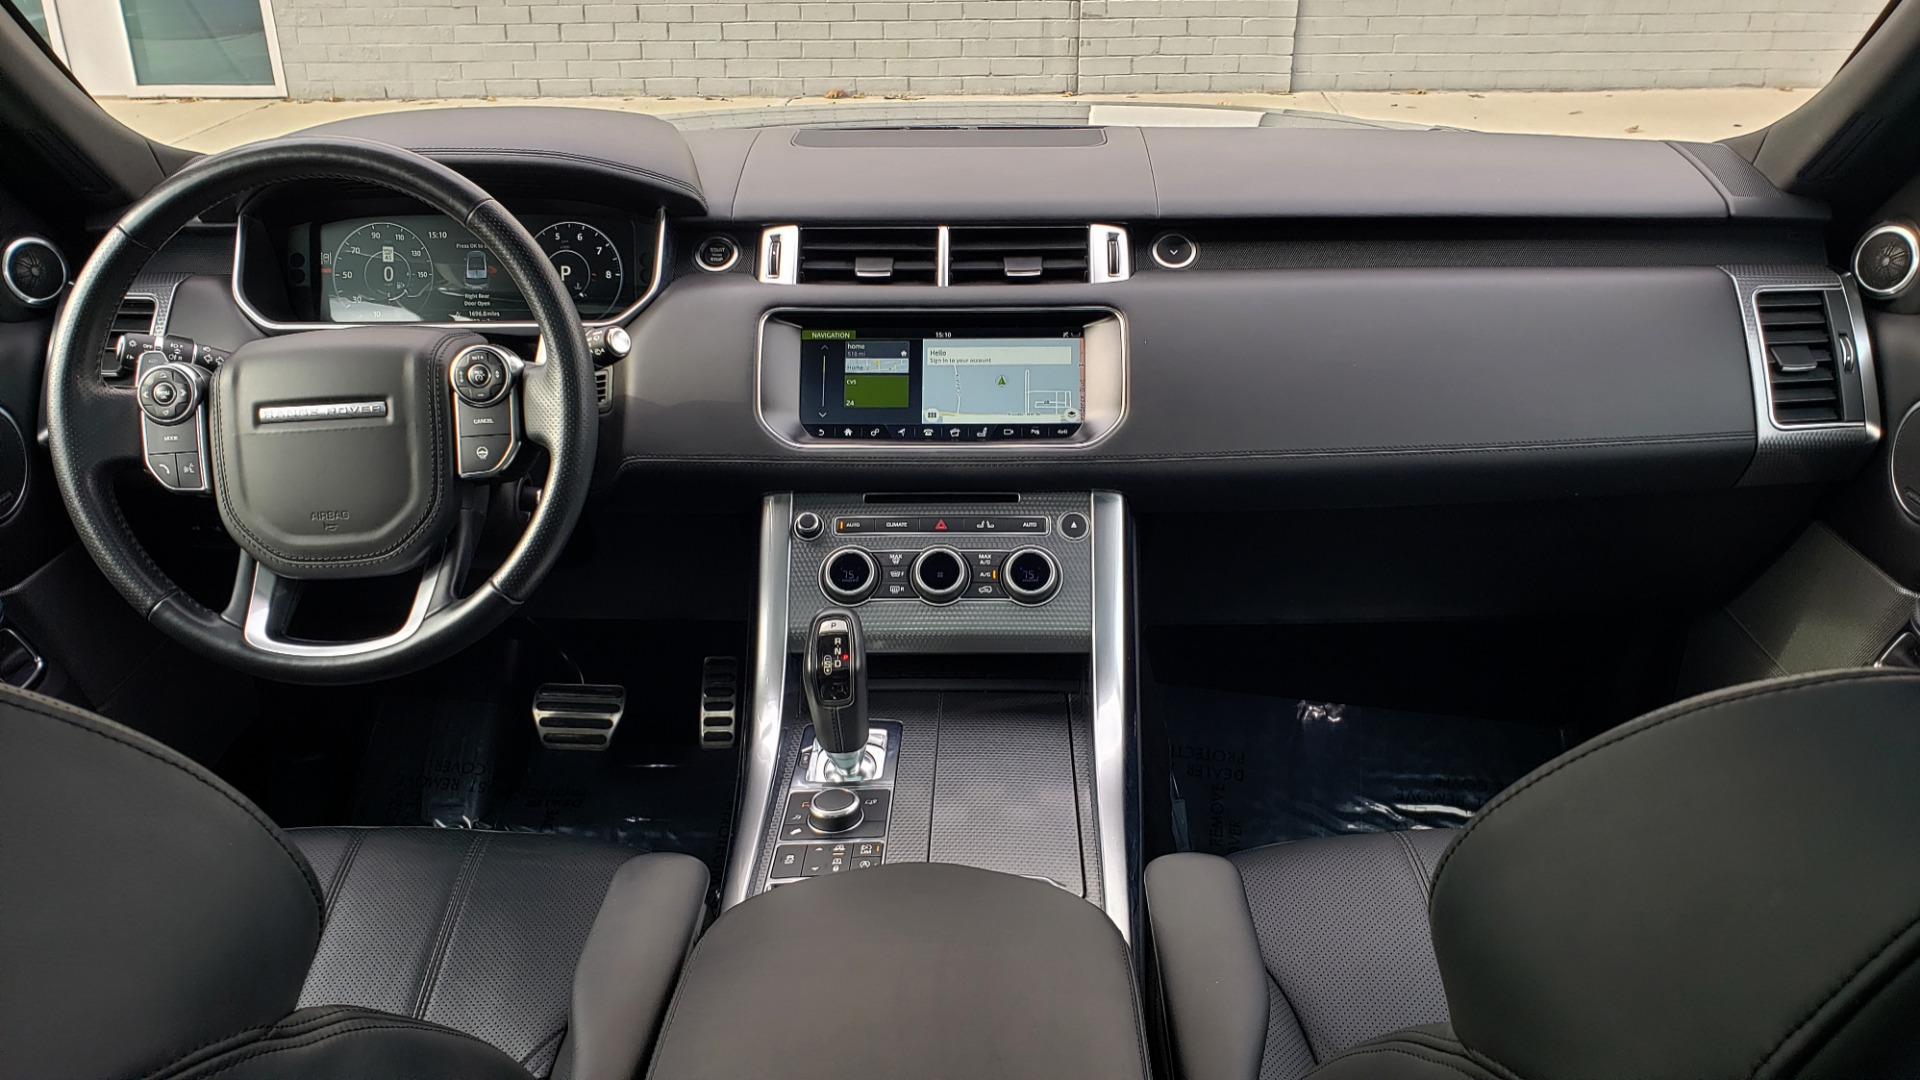 Used 2017 Land Rover RANGE ROVER SPORT HSE DYNAMIC / SC V6 / NAV / MERIDIAN / PANO-ROOF / REARVIEW for sale Sold at Formula Imports in Charlotte NC 28227 84